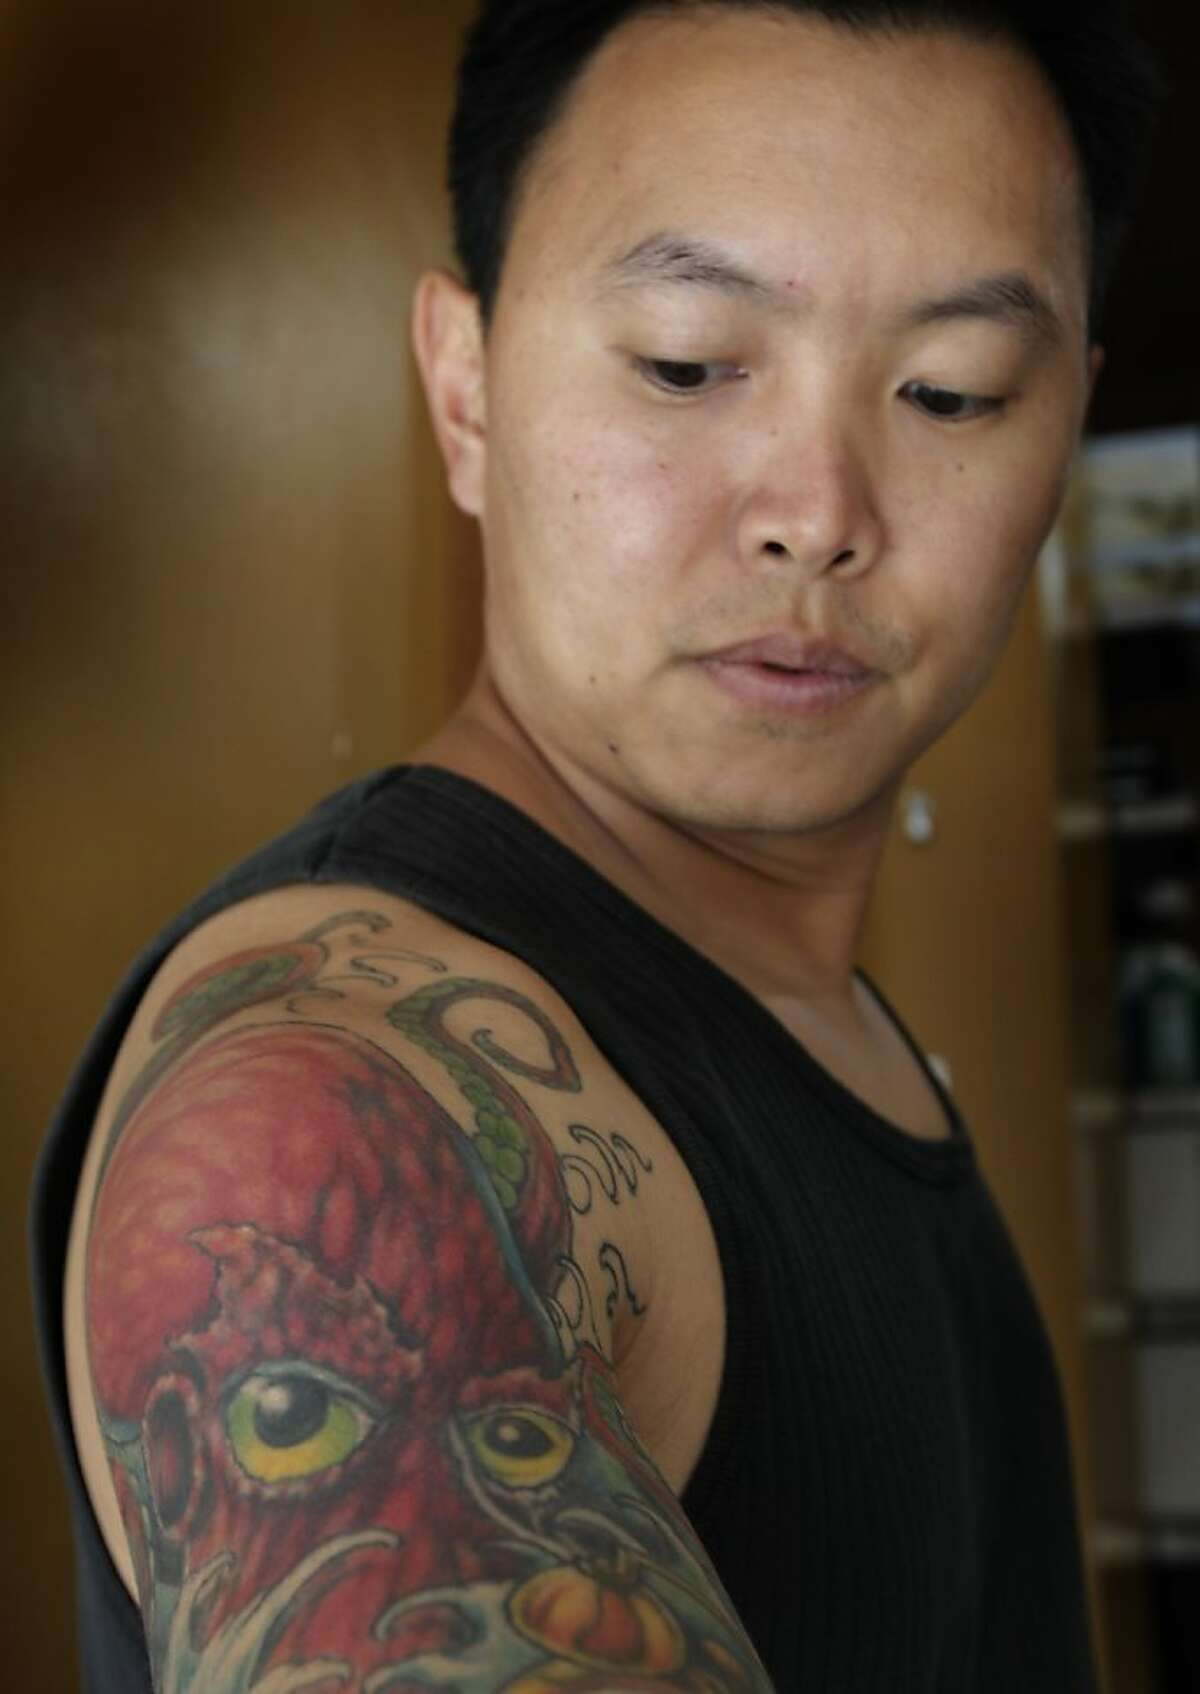 Vien Tang takes a close look at his octopus tattoo created by Mario Delgado at the Moth and Dagger tattoo studio in San Francisco, Calif. on Saturday, Sept. 3, 2011. Tattoo studios are not required to post ingredients in the inks used but Delgado, a tattoo artist and the studio's owner, will provide them on request.